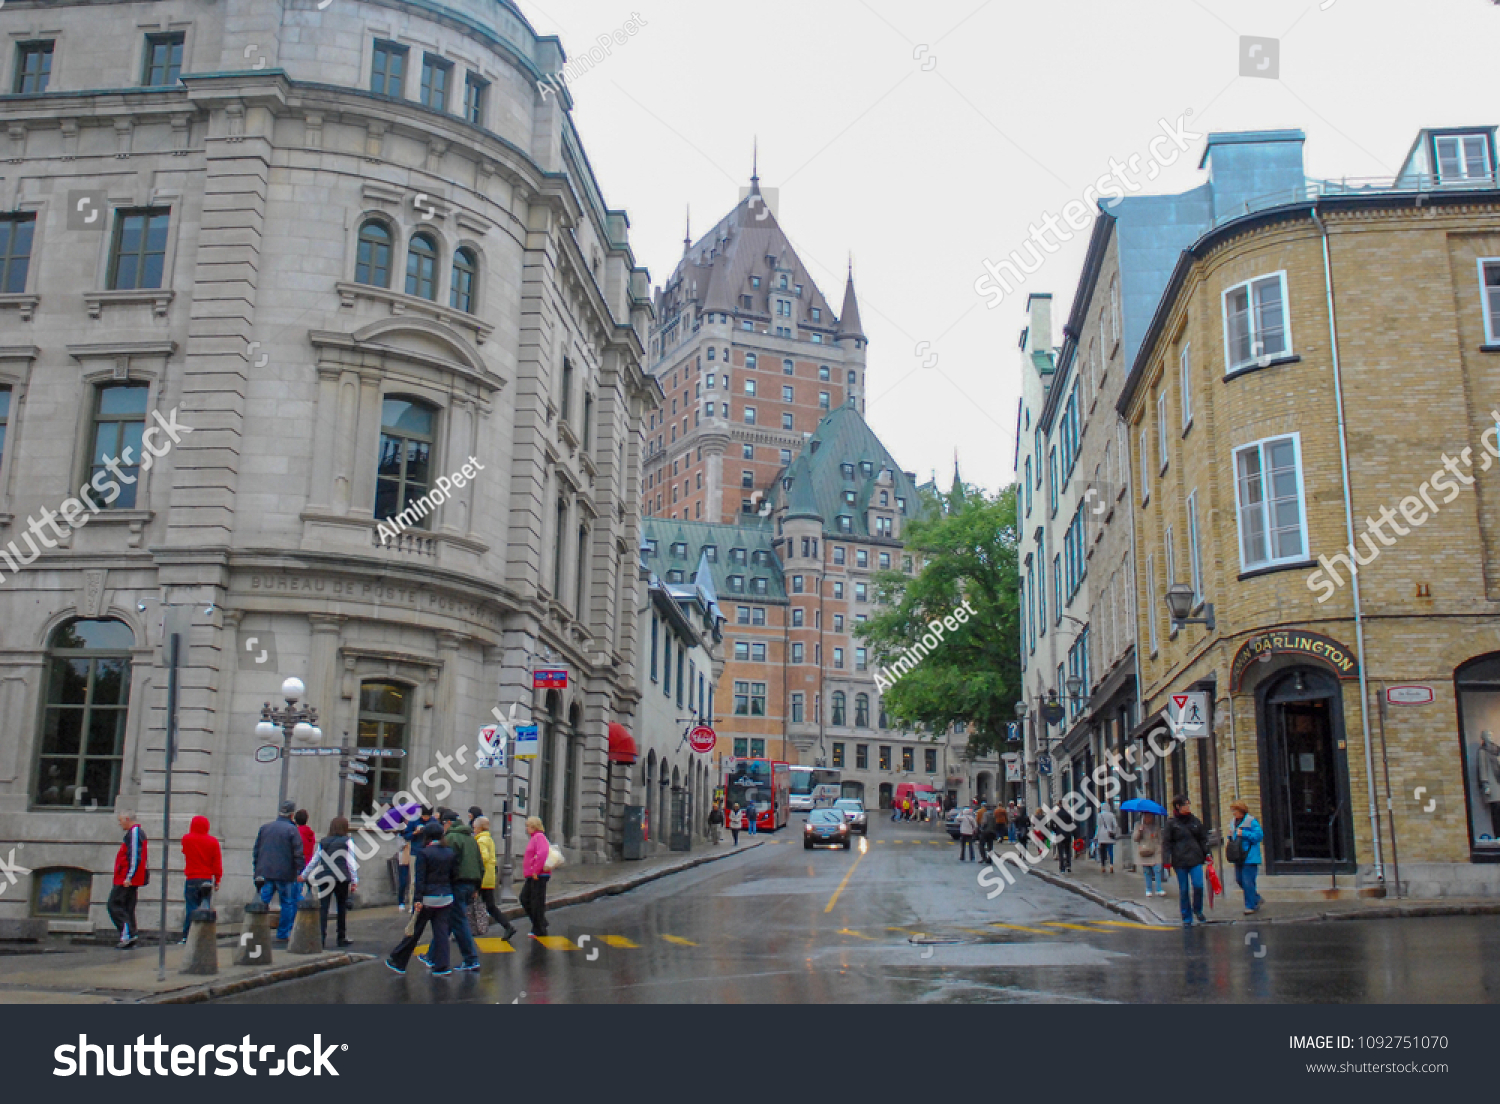 Quebec city quebec canada on october stock photo edit now